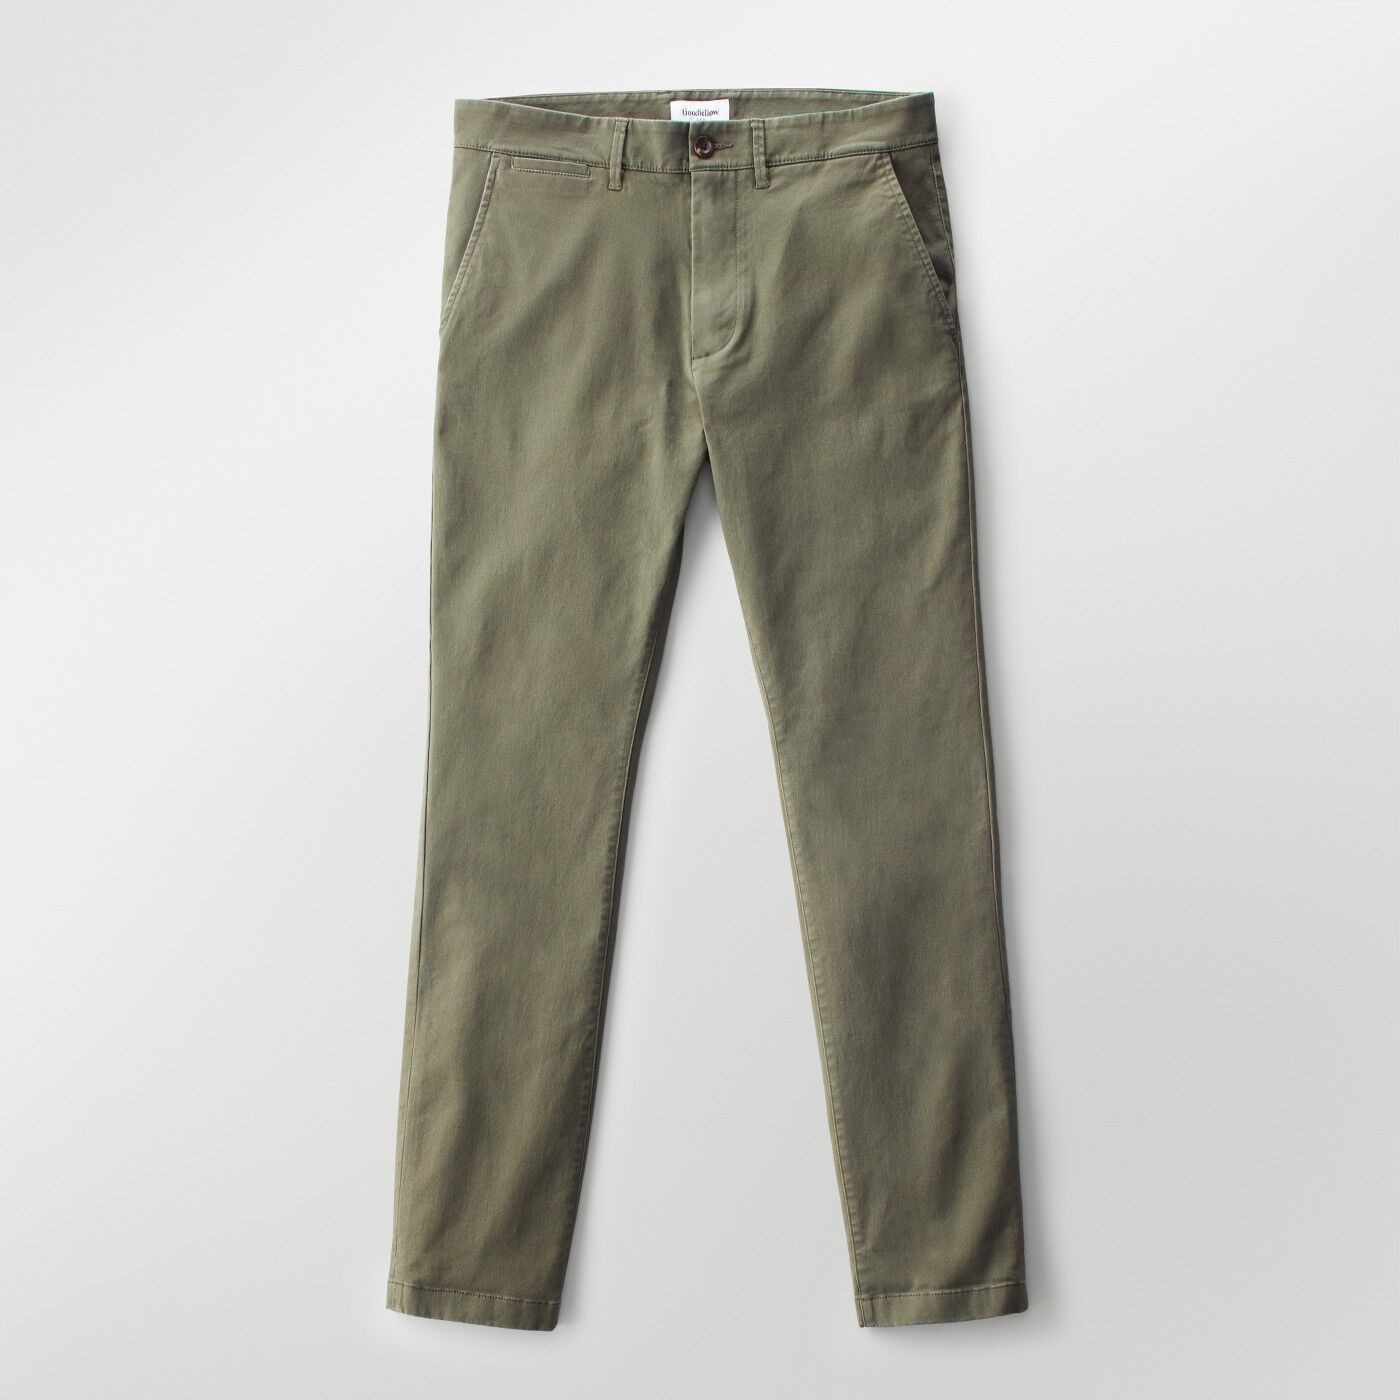 8dcd7b477fb7 Look effortless and cool with Hennepin Chino Pants from Goodfellow & Co™.  Made from comfortable stretch cotton twill and then washed for softness, ...